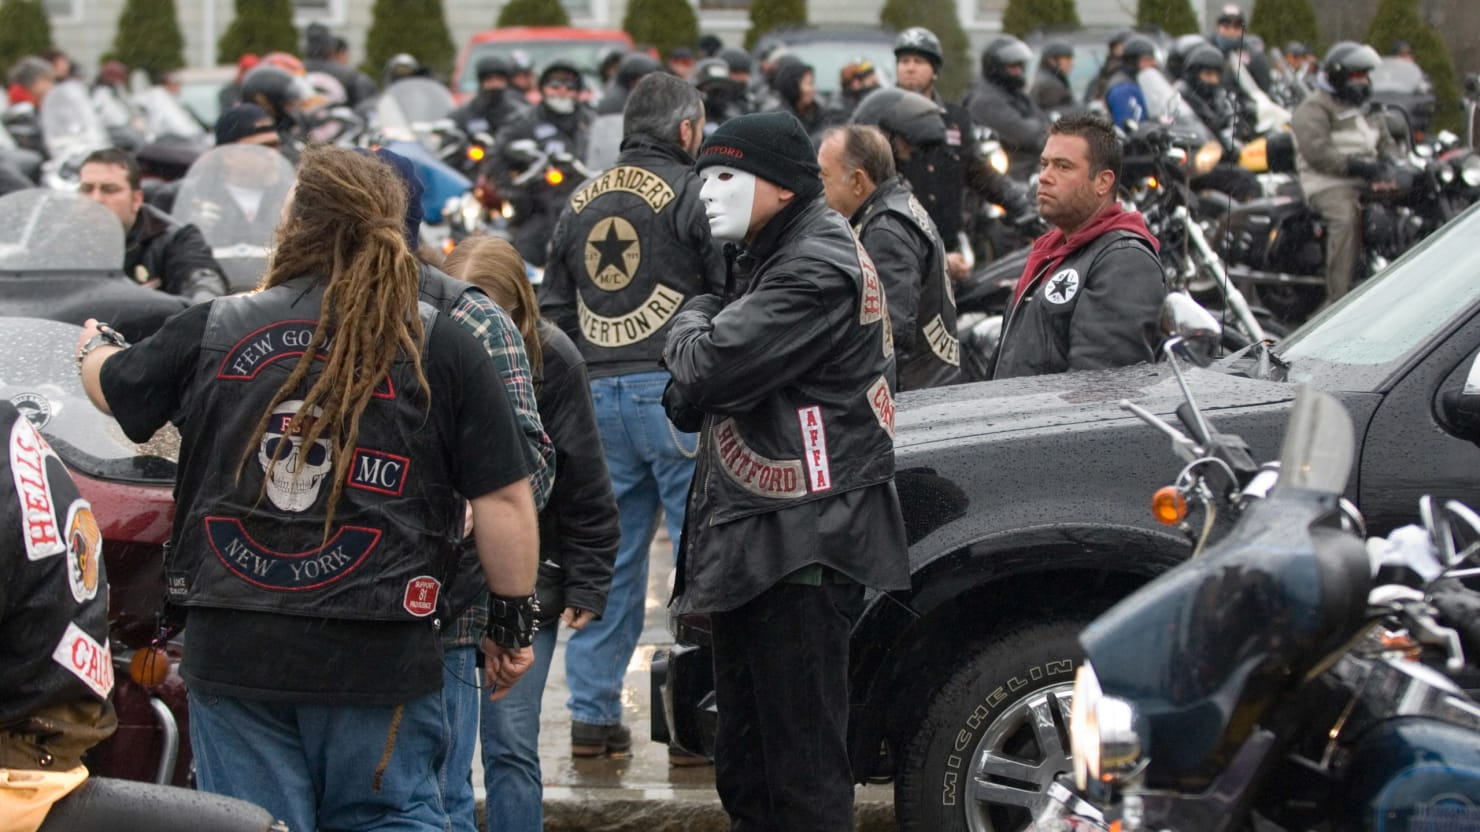 York Auto Group >> Are Motorcycle Clubs a Public Menace?